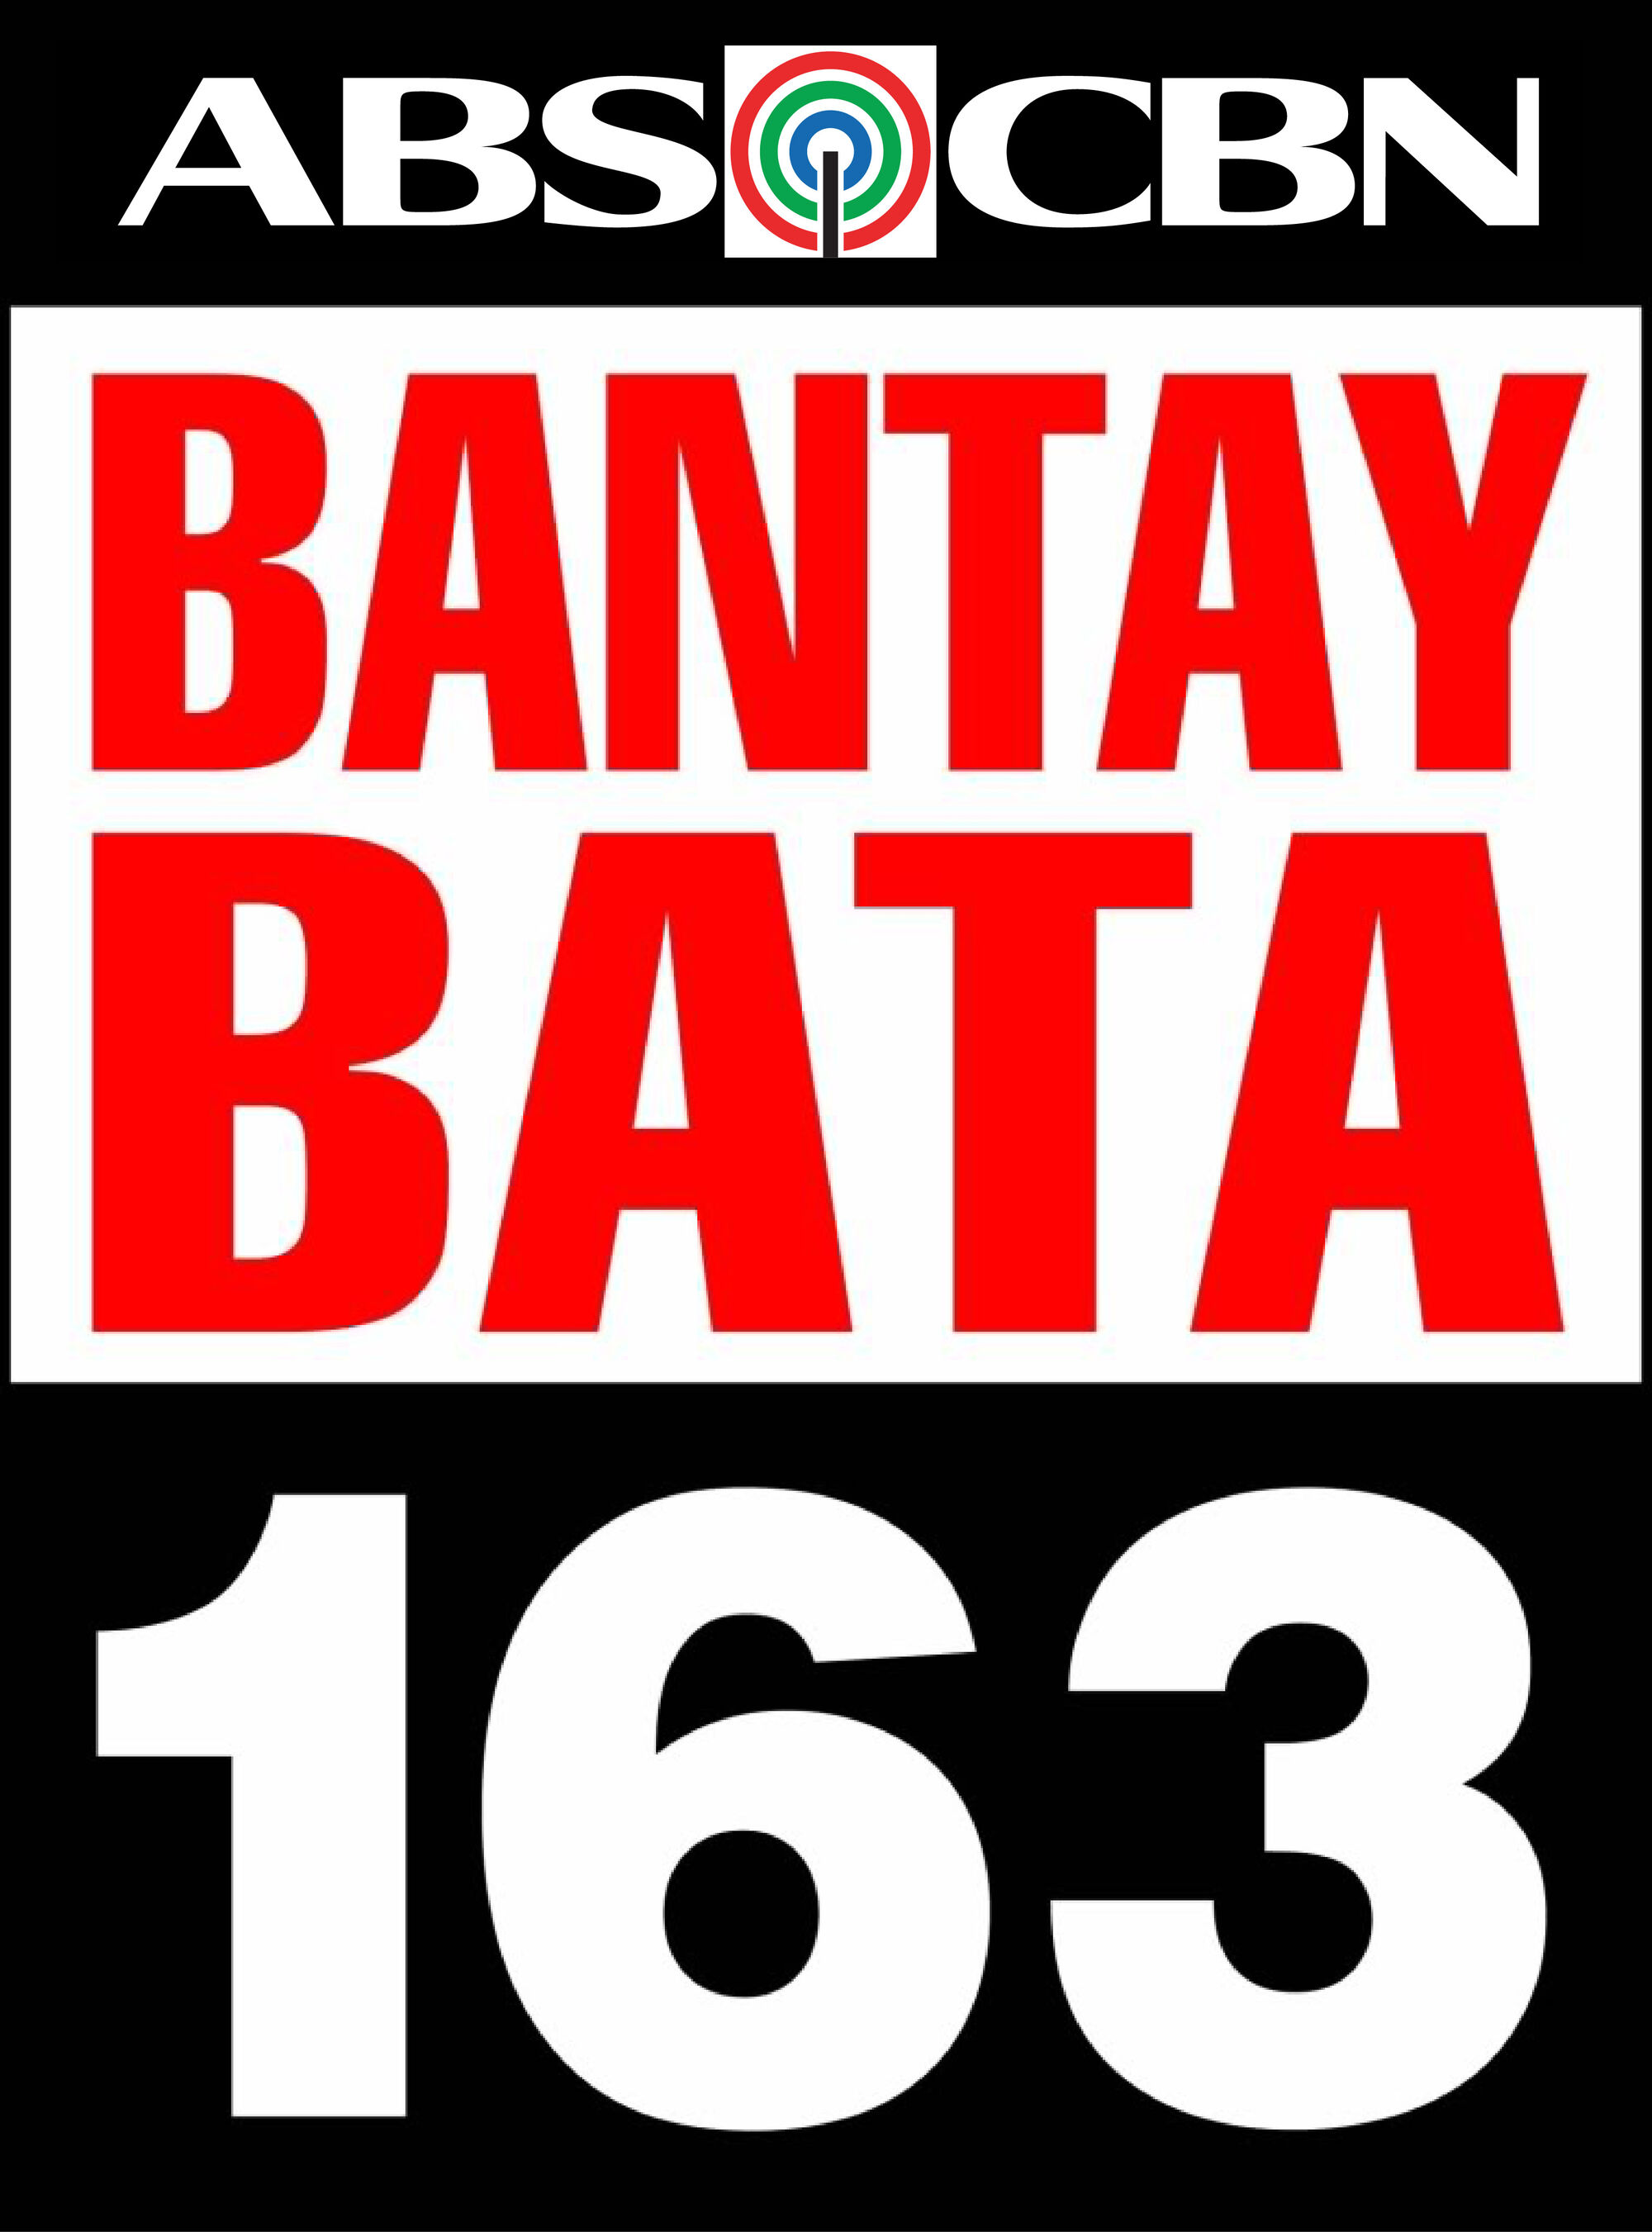 Bantay Bata 163 | Logopedia | FANDOM powered by Wikia